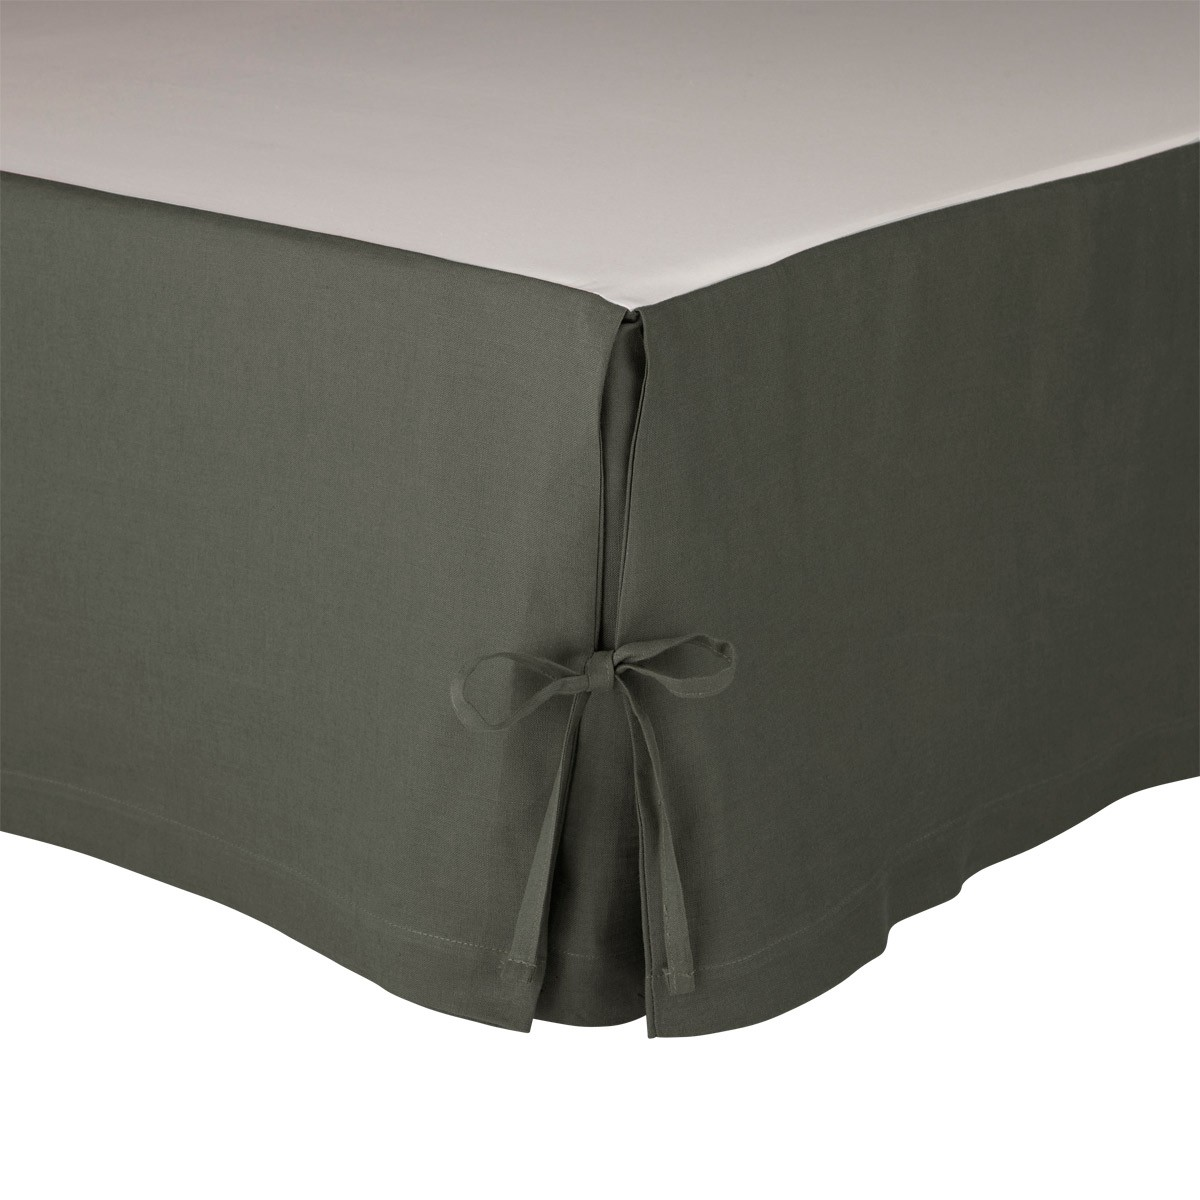 Cache sommier Lin Anthracite 90 x 190 cm (photo)